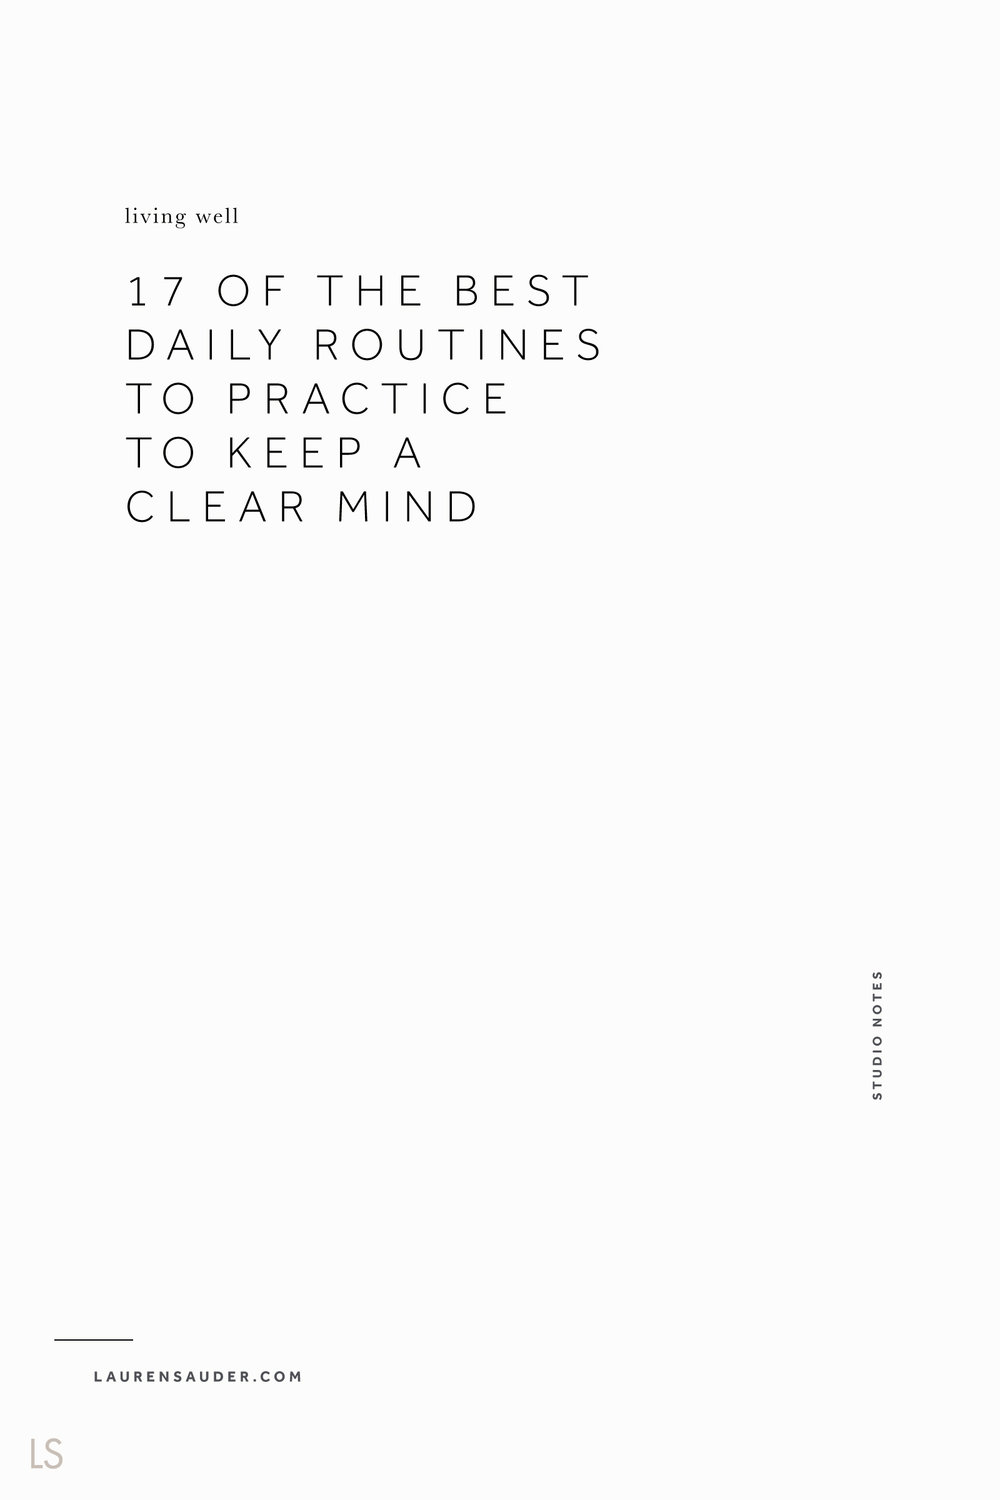 17 of the Best Daily Routines to Practice to Keep a Clear Mind - Lauren Sauder #dailyroutines #routines affirmations, visualization, morning routine, evening routine, afternoon routines, routines for busy people, how to keep a clear mind